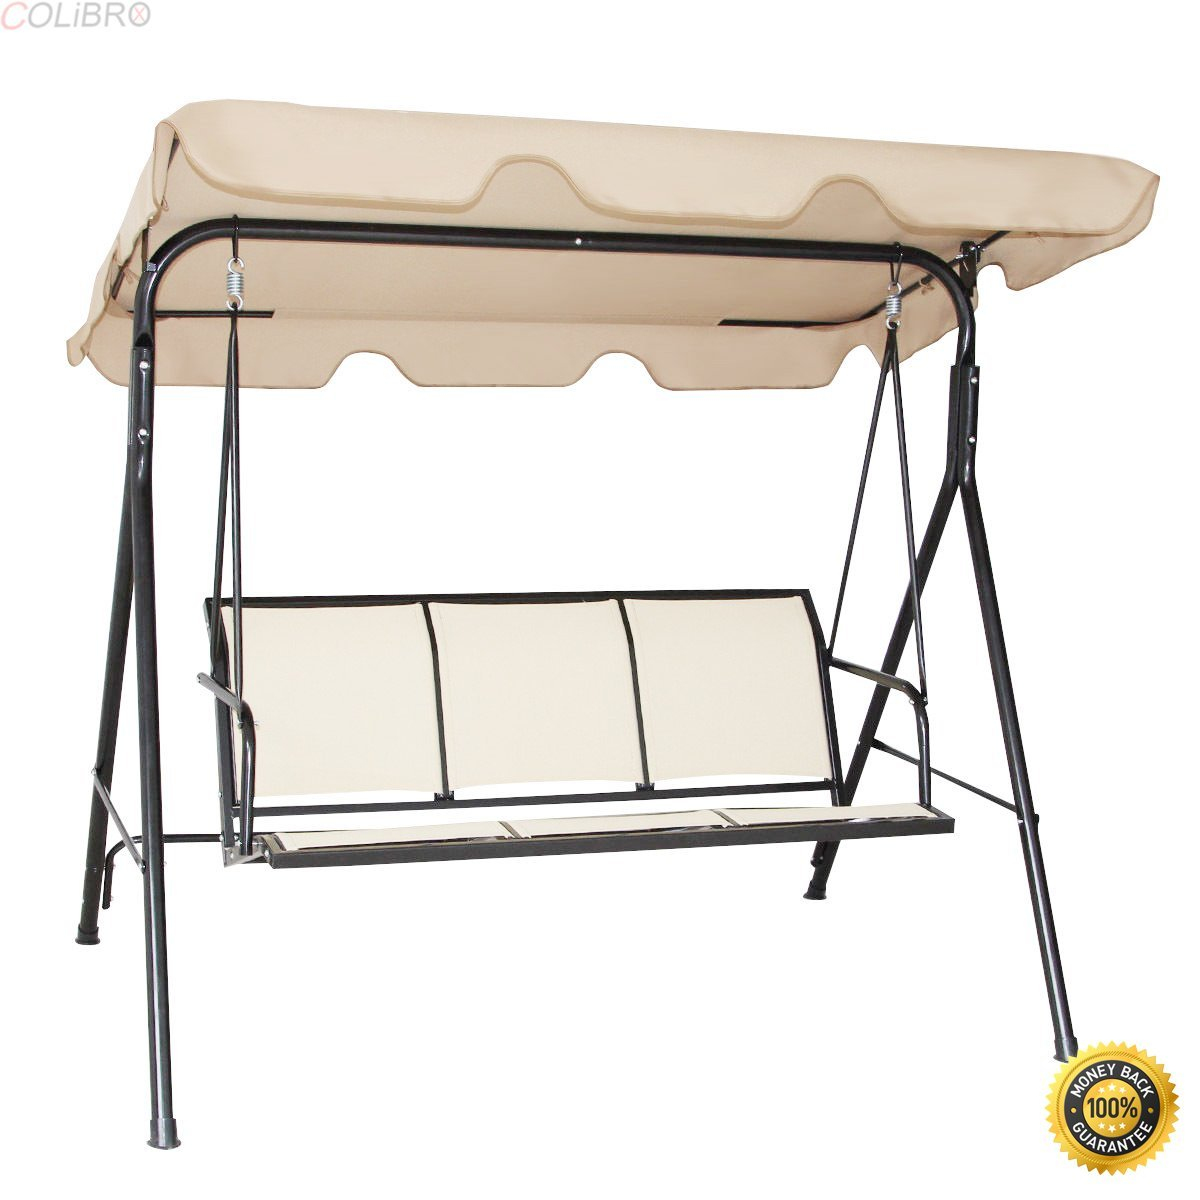 Cheap 3 Person Outdoor Swing With Canopy Find 3 Person Outdoor